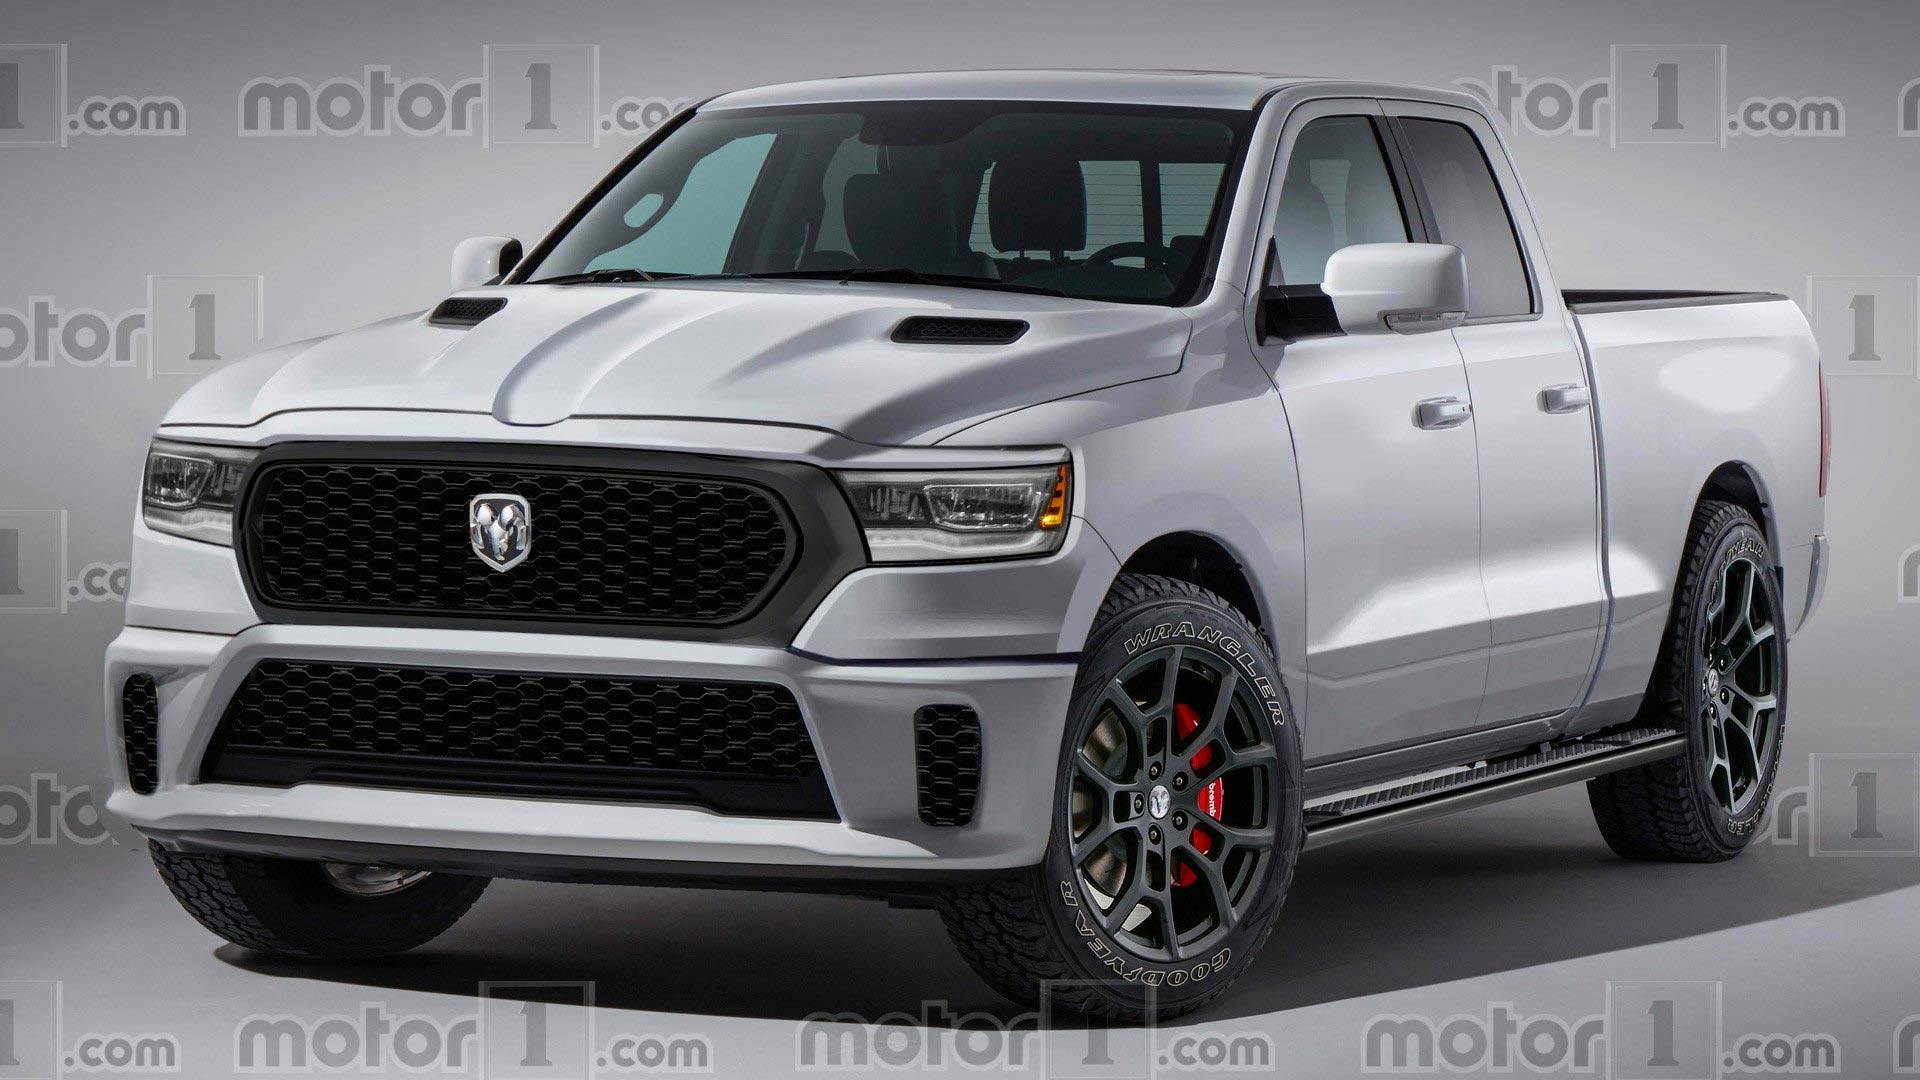 2017 Ram Rebel Trx Price >> Ram Rebel Trx To Pack 707 Hp Rebel Tr Coming With 520 Hp